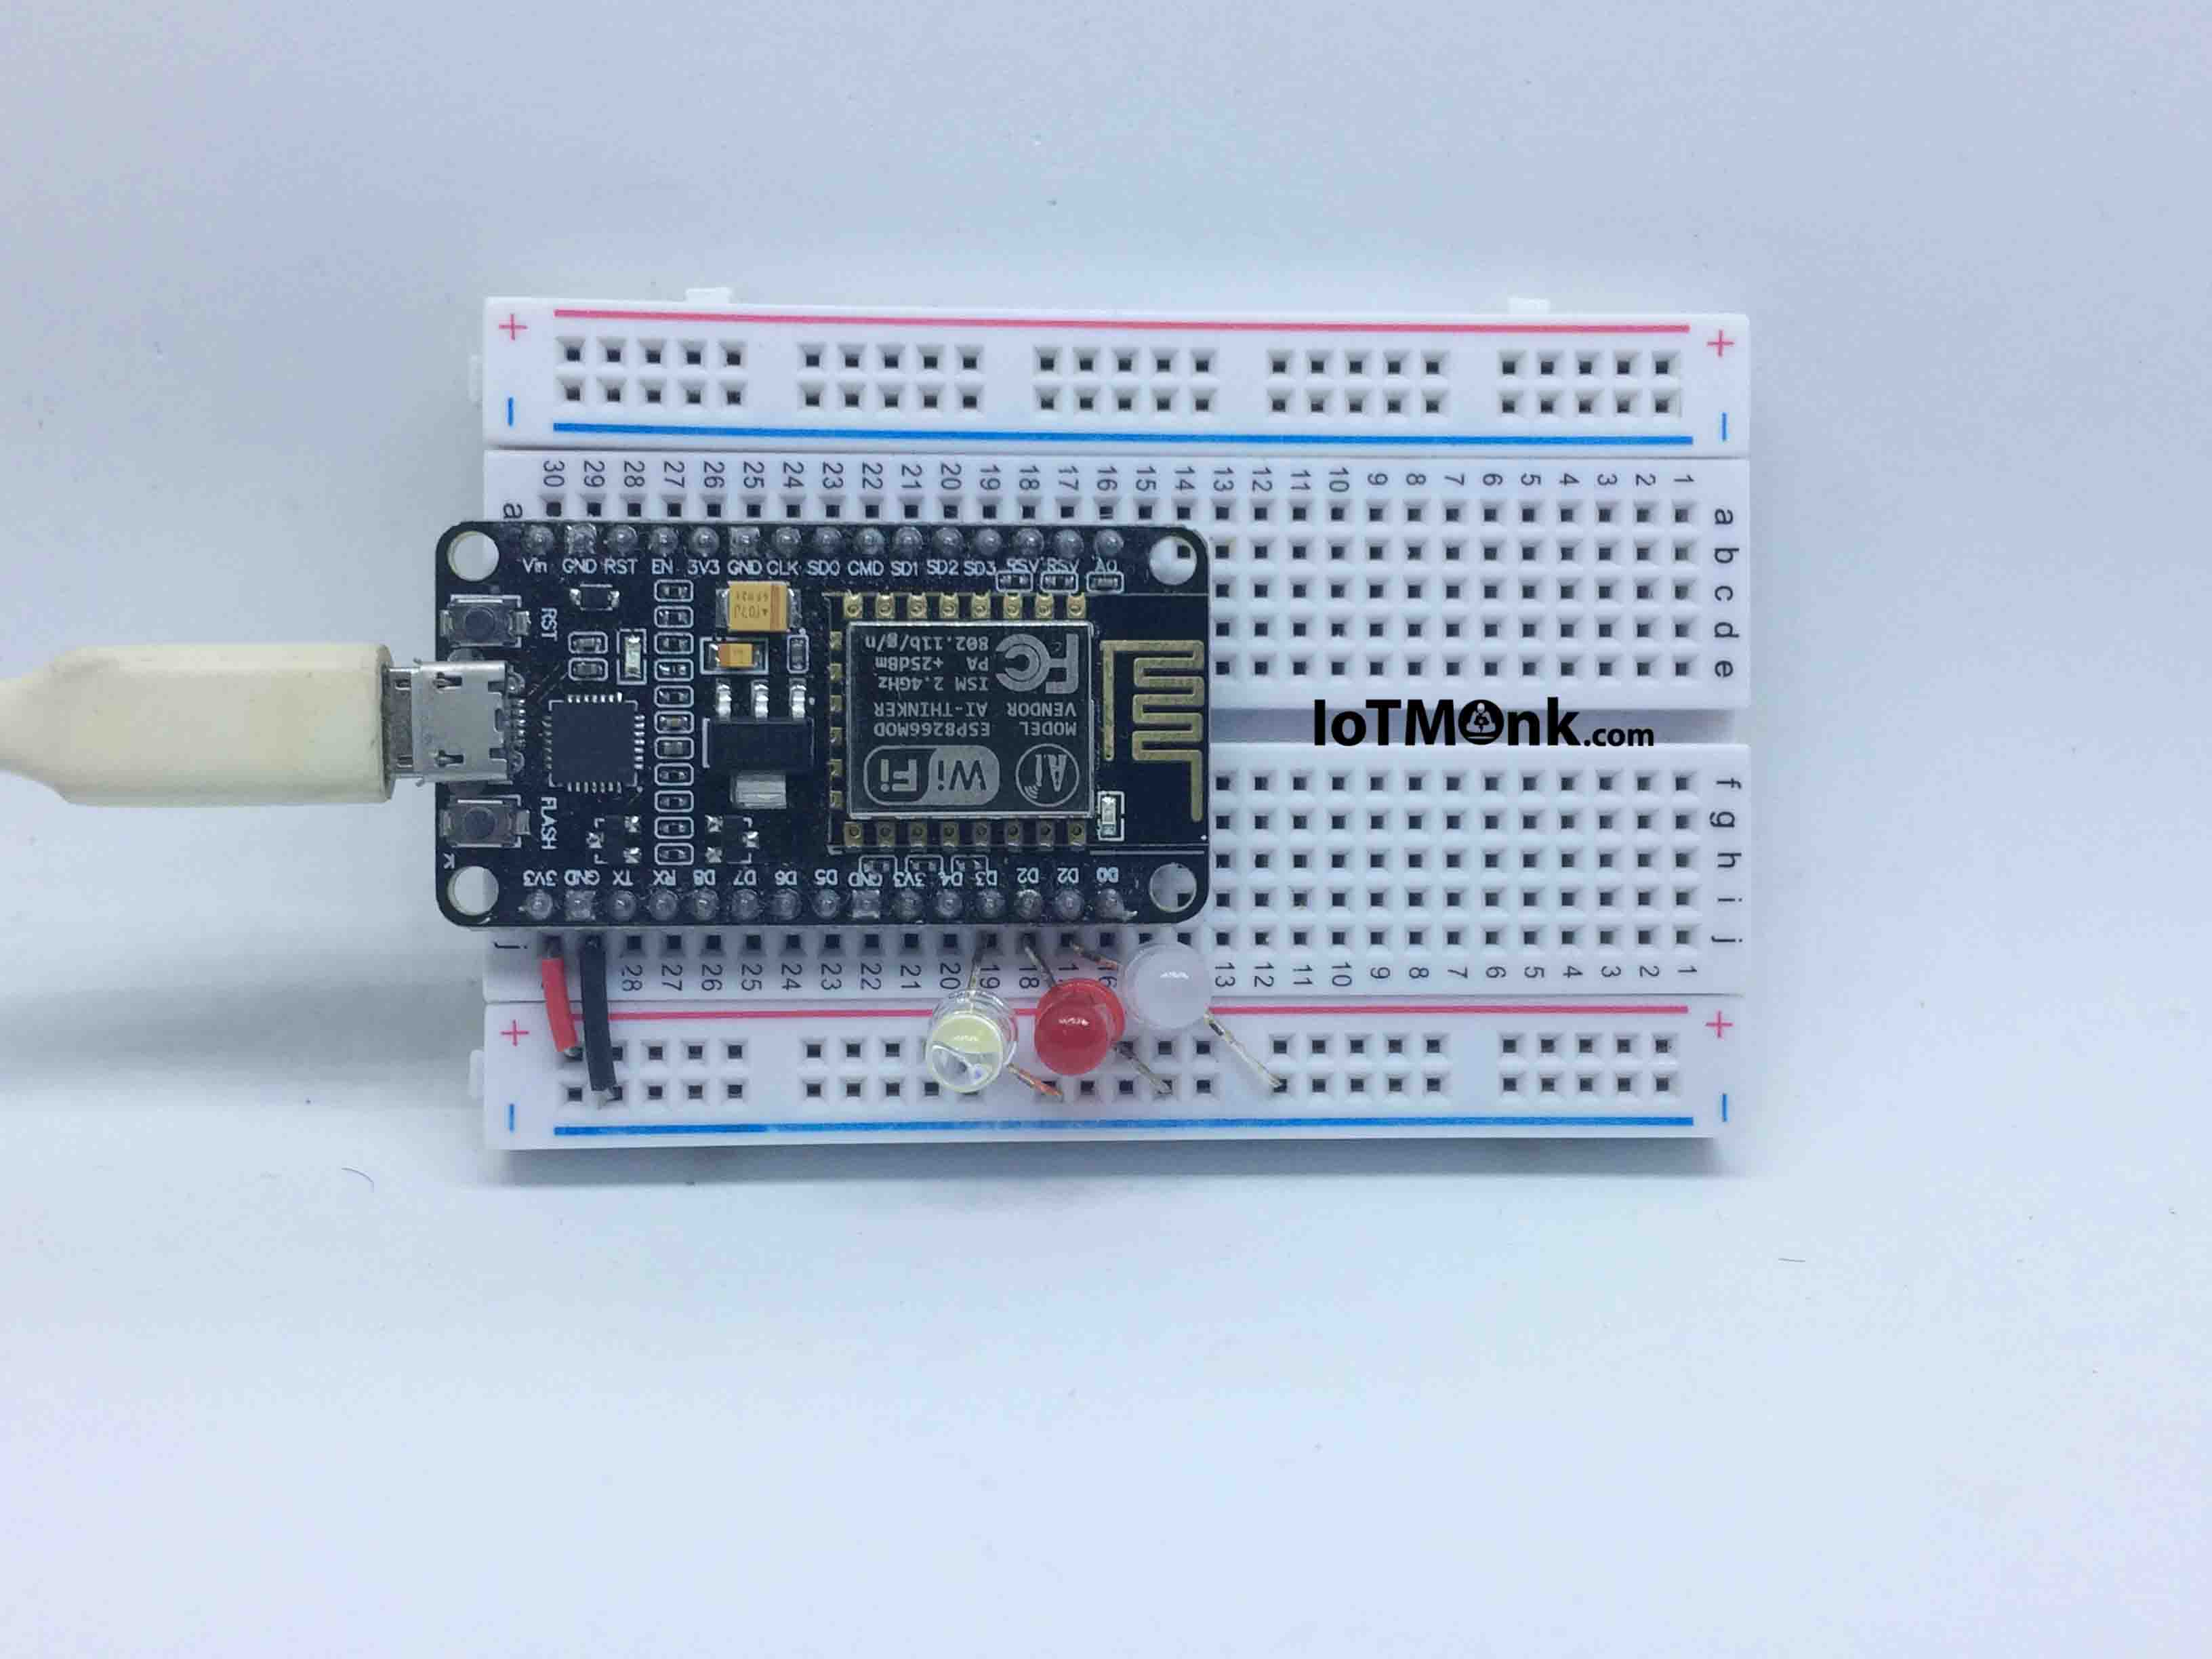 Picture of Setting Up ESP12E NodeMCU on Breadboard With LED